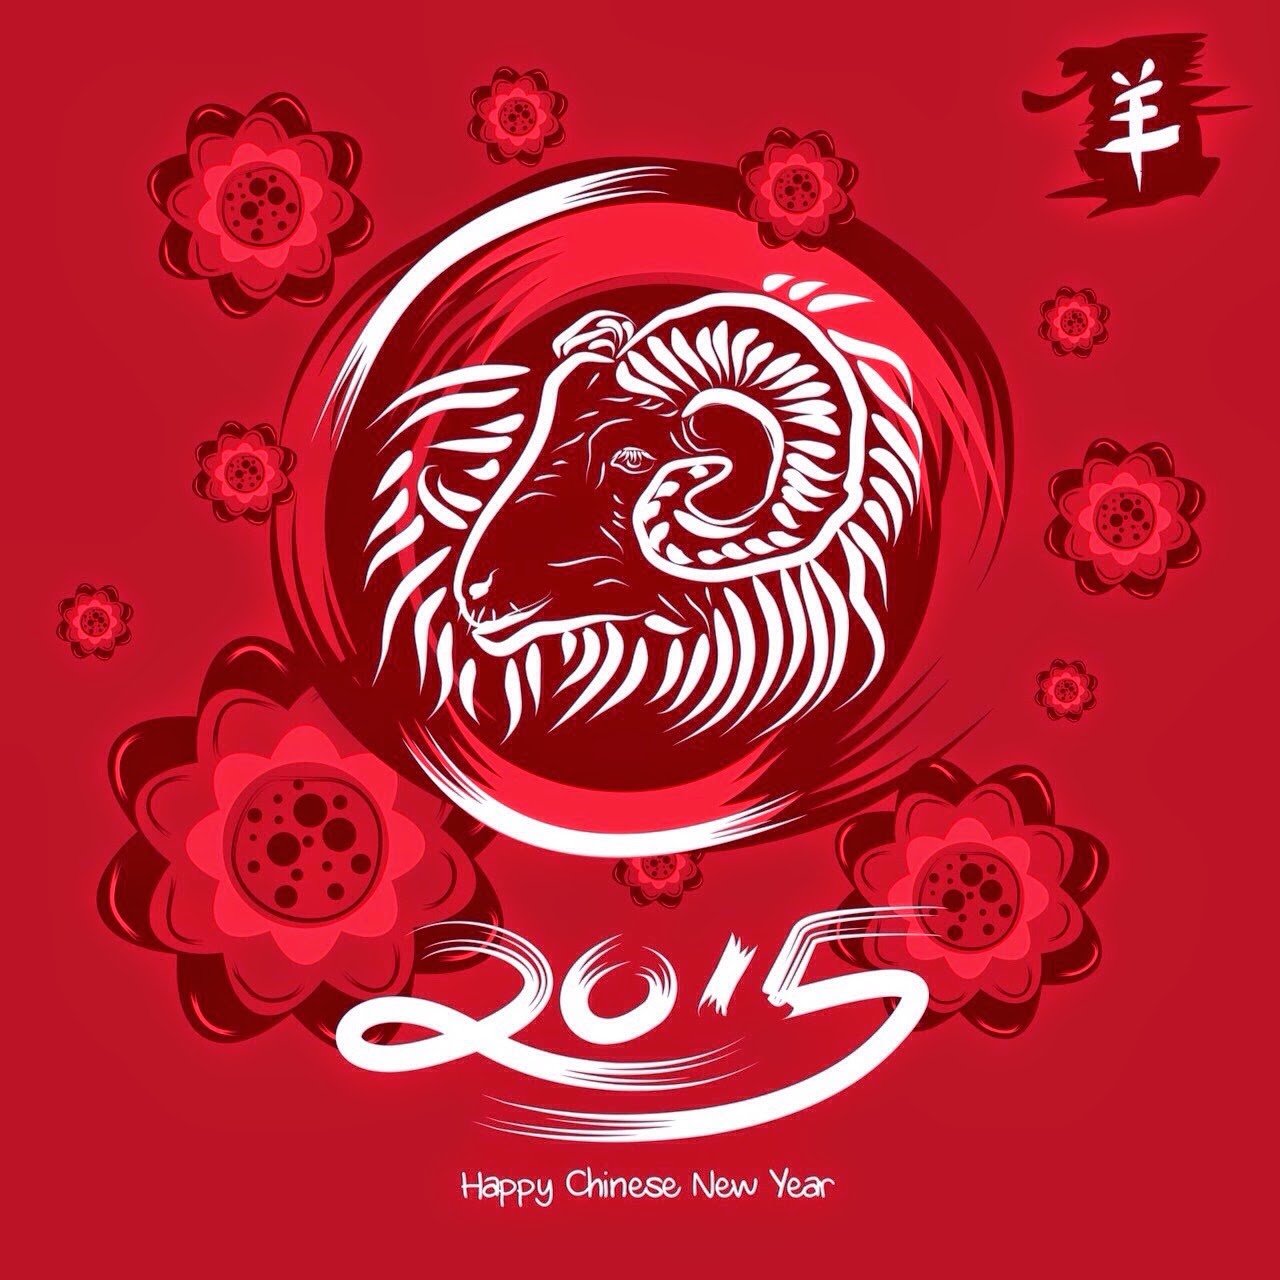 Otoreview Otomobil Review Happy Chinese New Year 2015